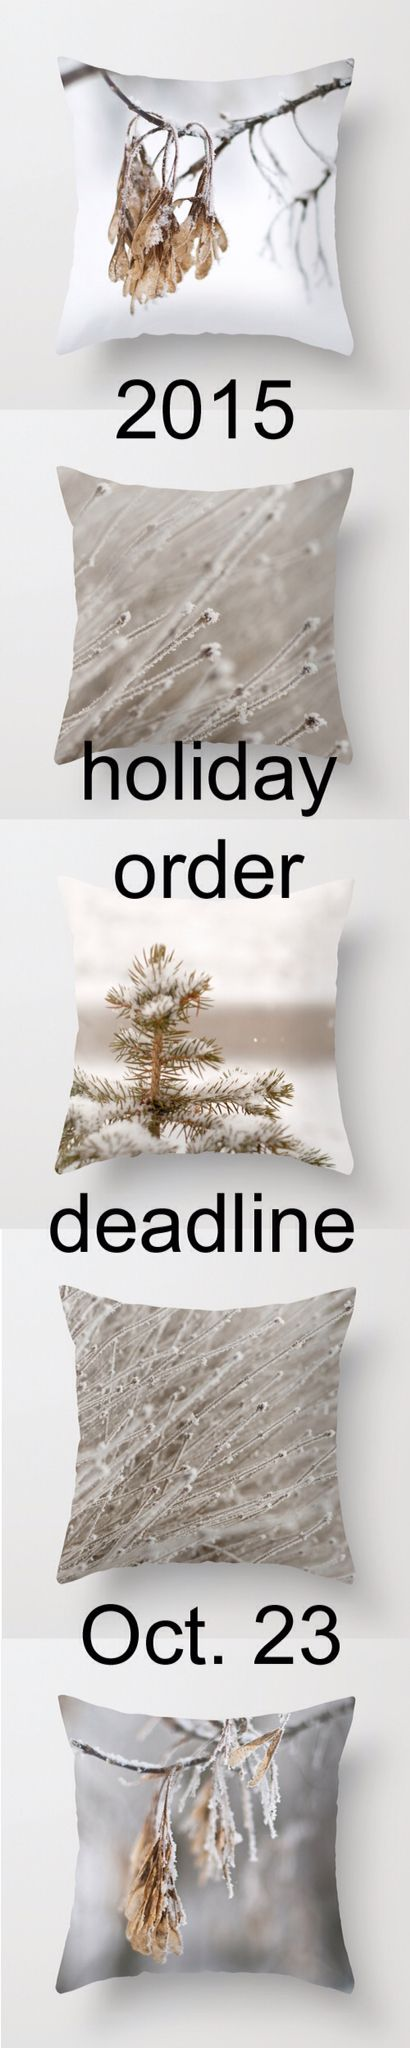 Winter Decor pillow covers. Get yours in time to decorate for Christmas!